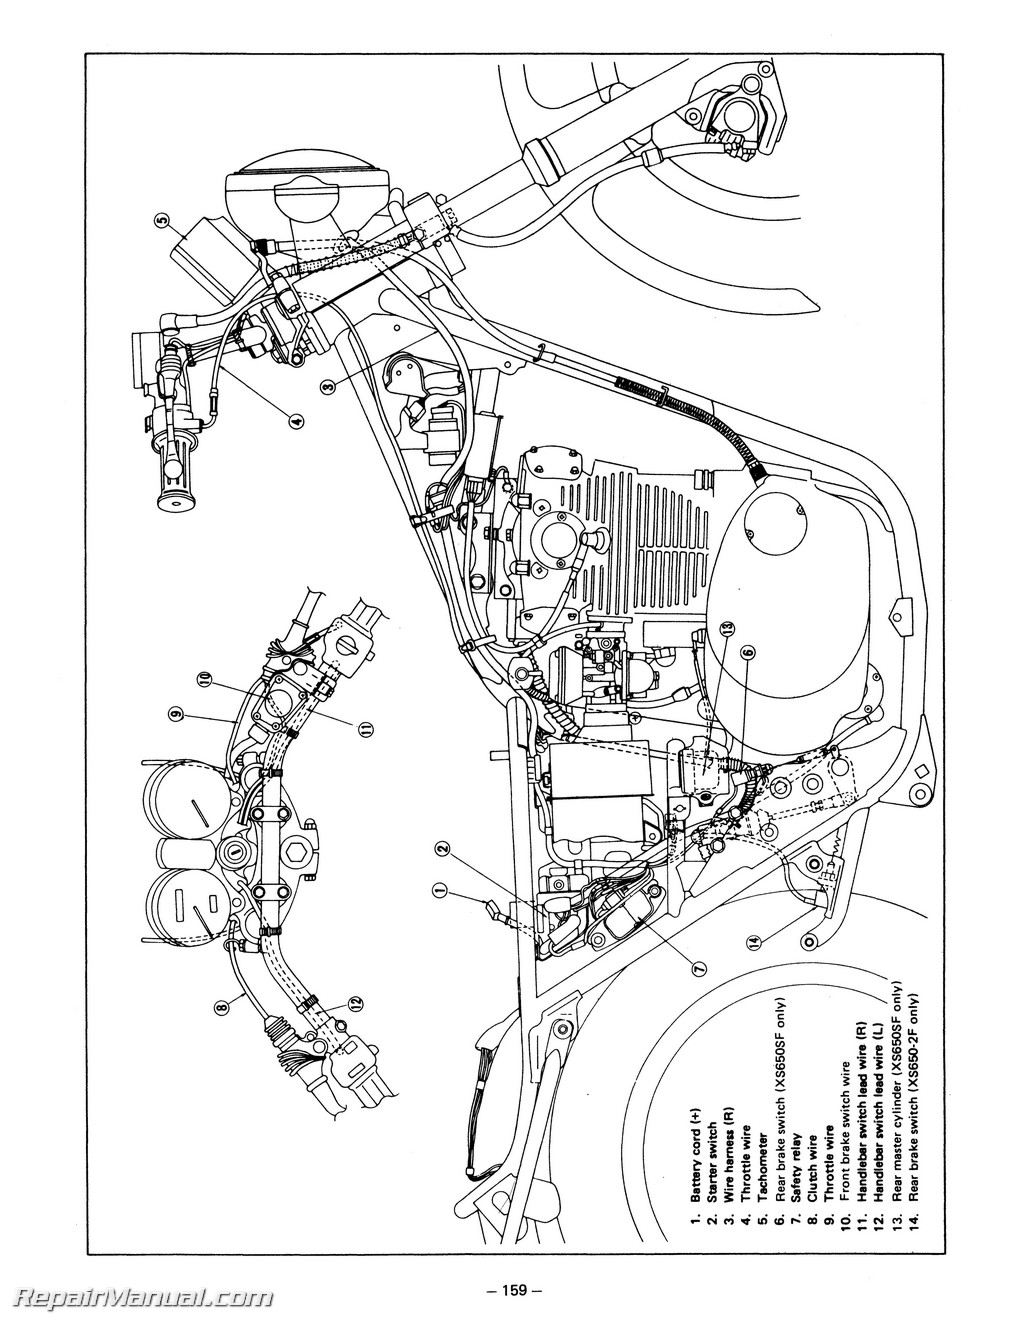 Yamaha Xs650 Service Manual